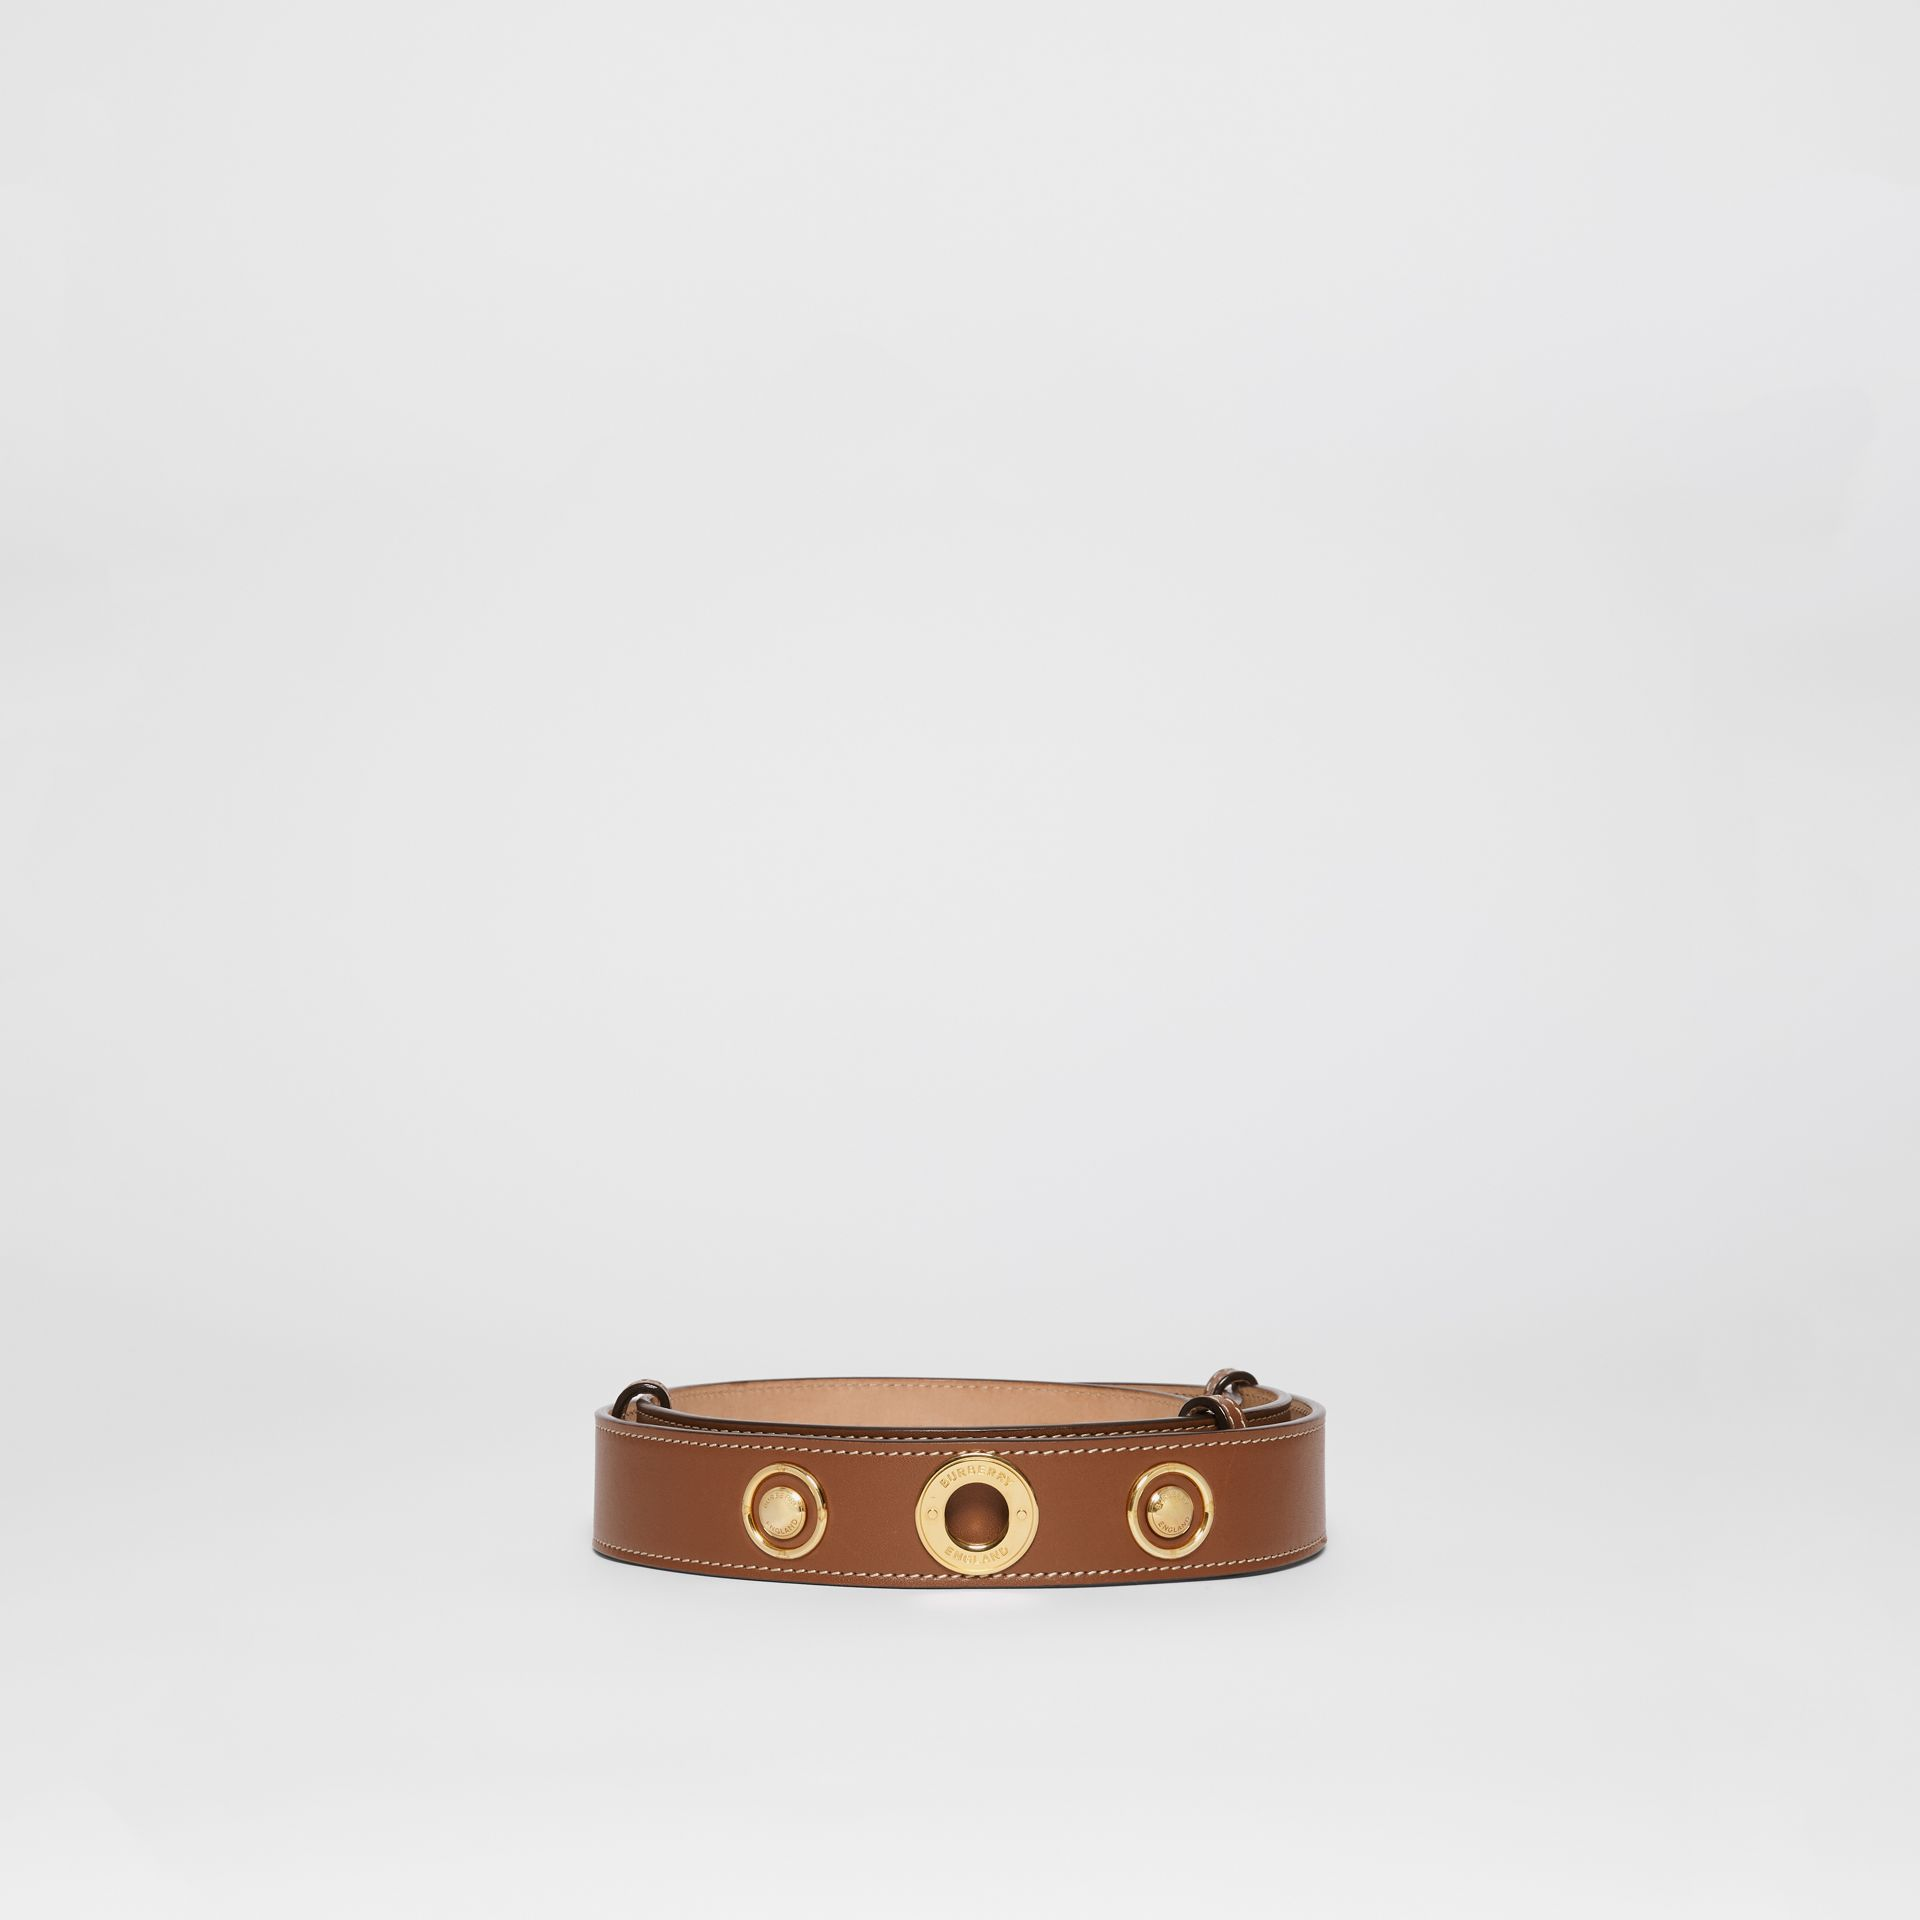 Triple Stud Leather Belt in Tan - Women | Burberry - gallery image 3